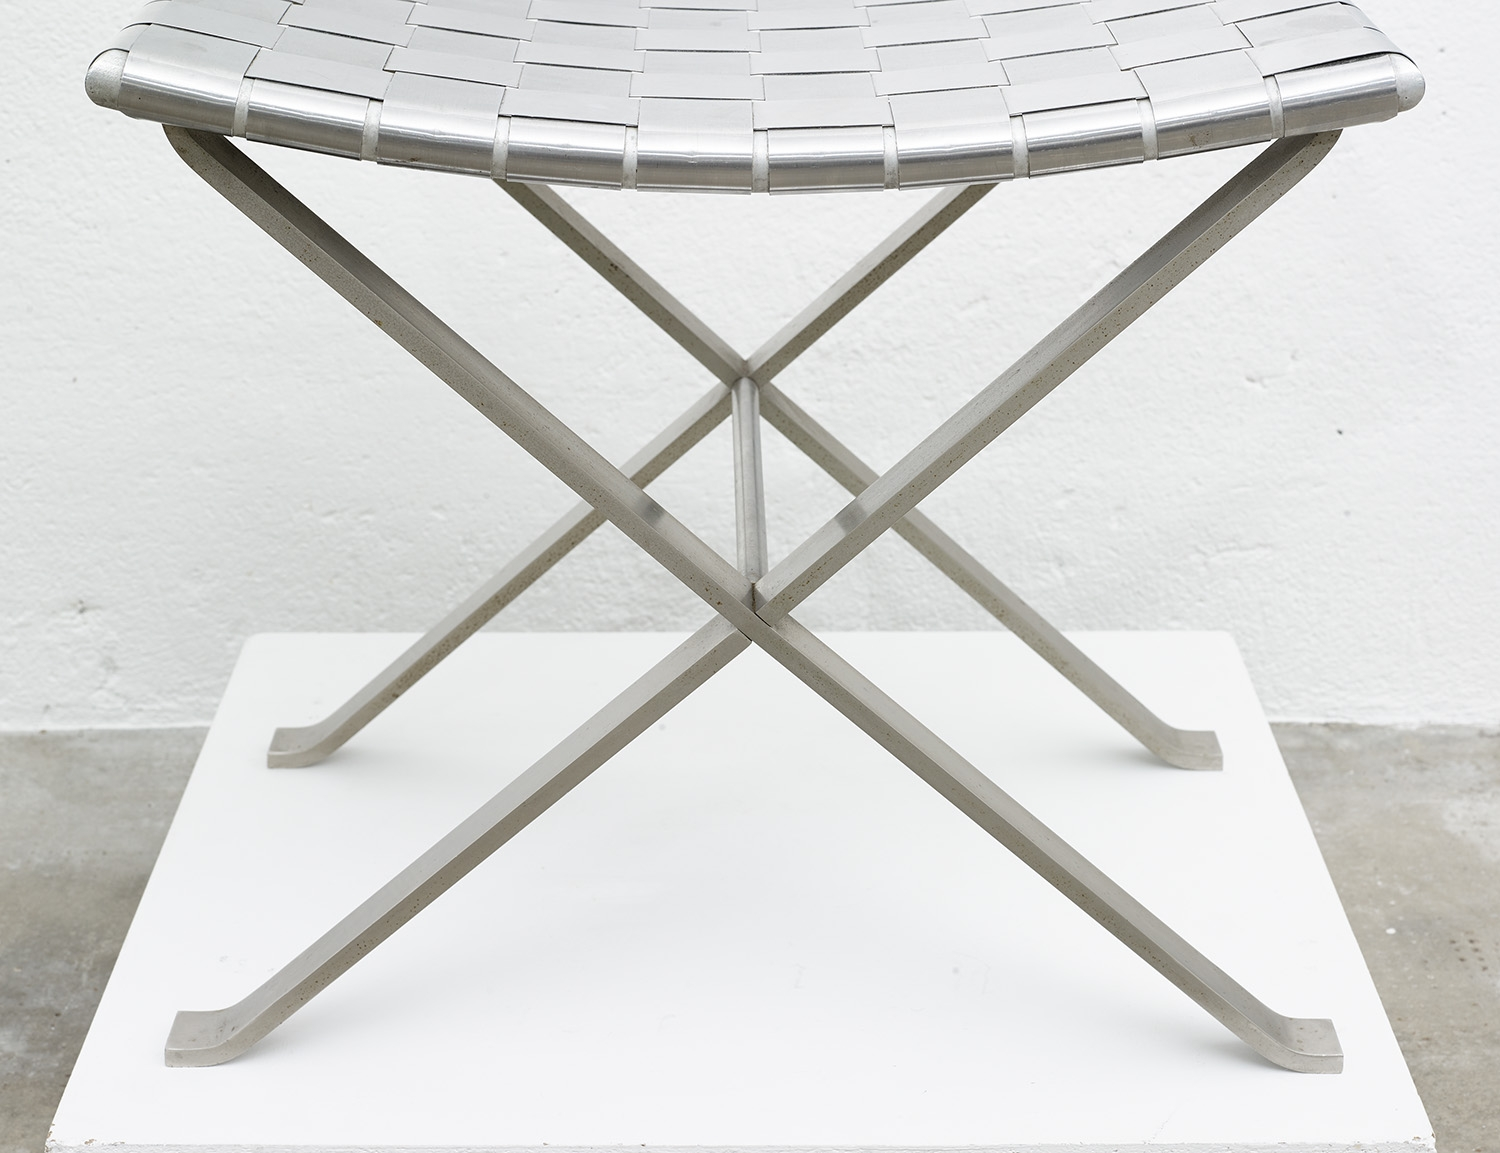 stool-in-stainless-steel-by-michel-pigneres-1970-image-05